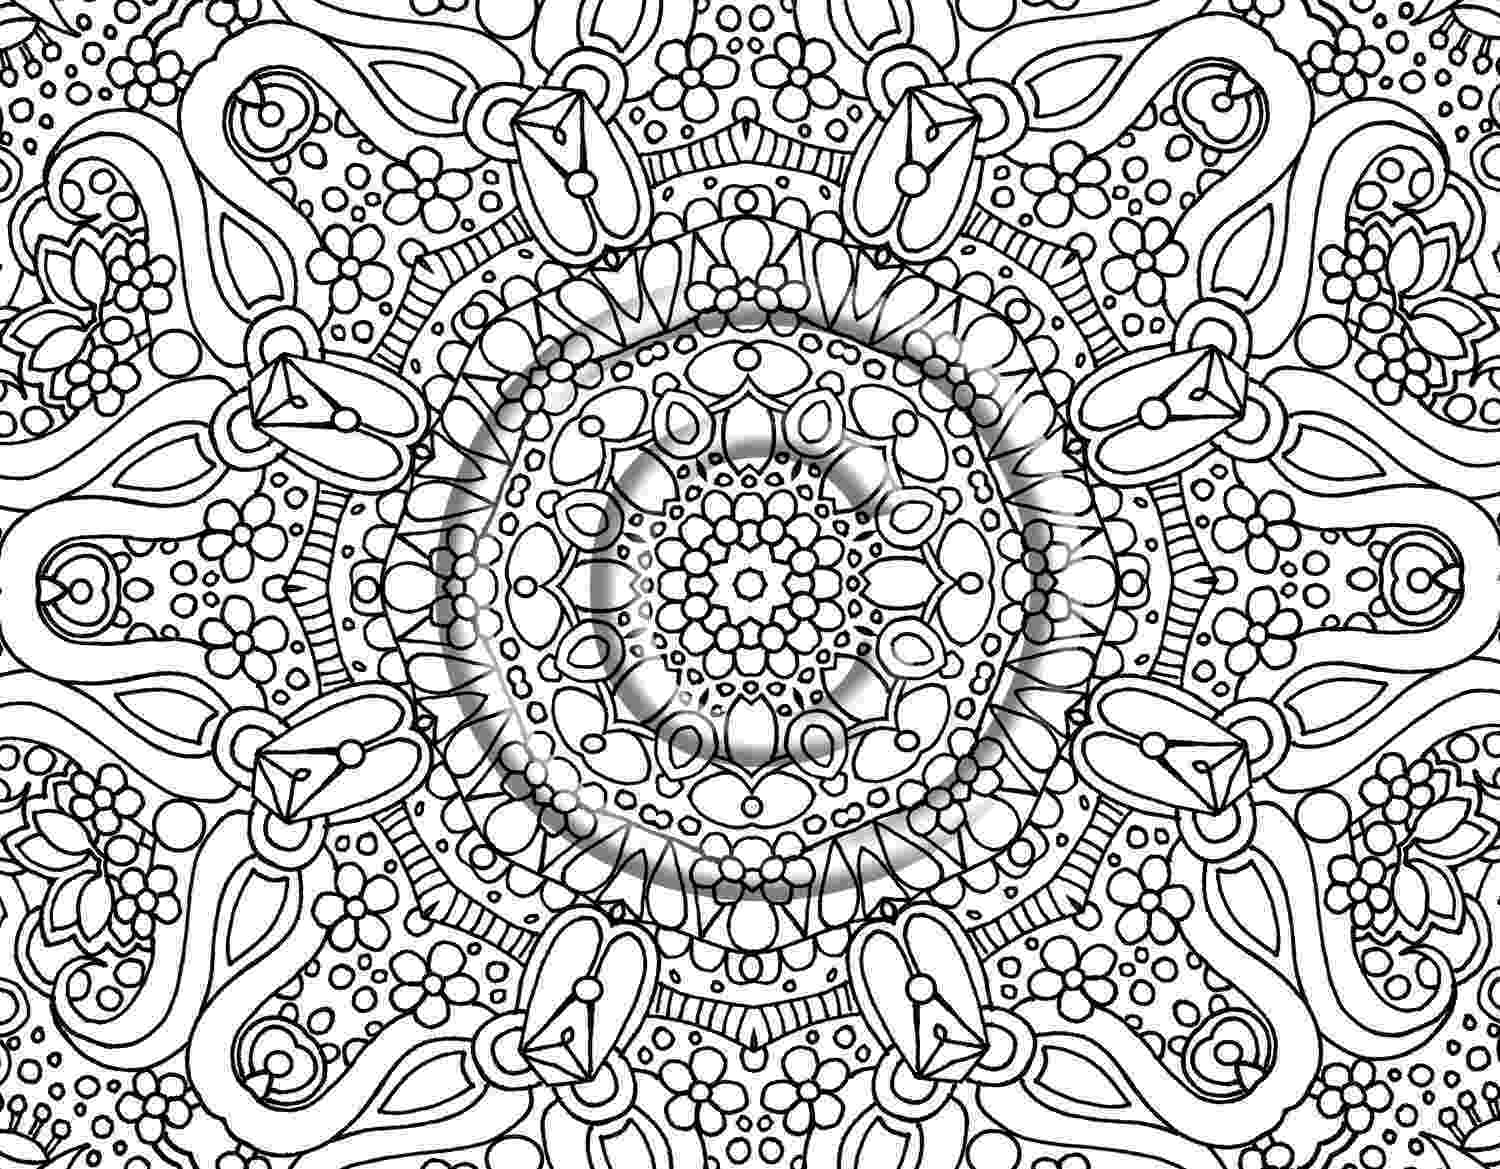 free printable detailed coloring pages free printable abstract coloring pages for adults pages free coloring detailed printable